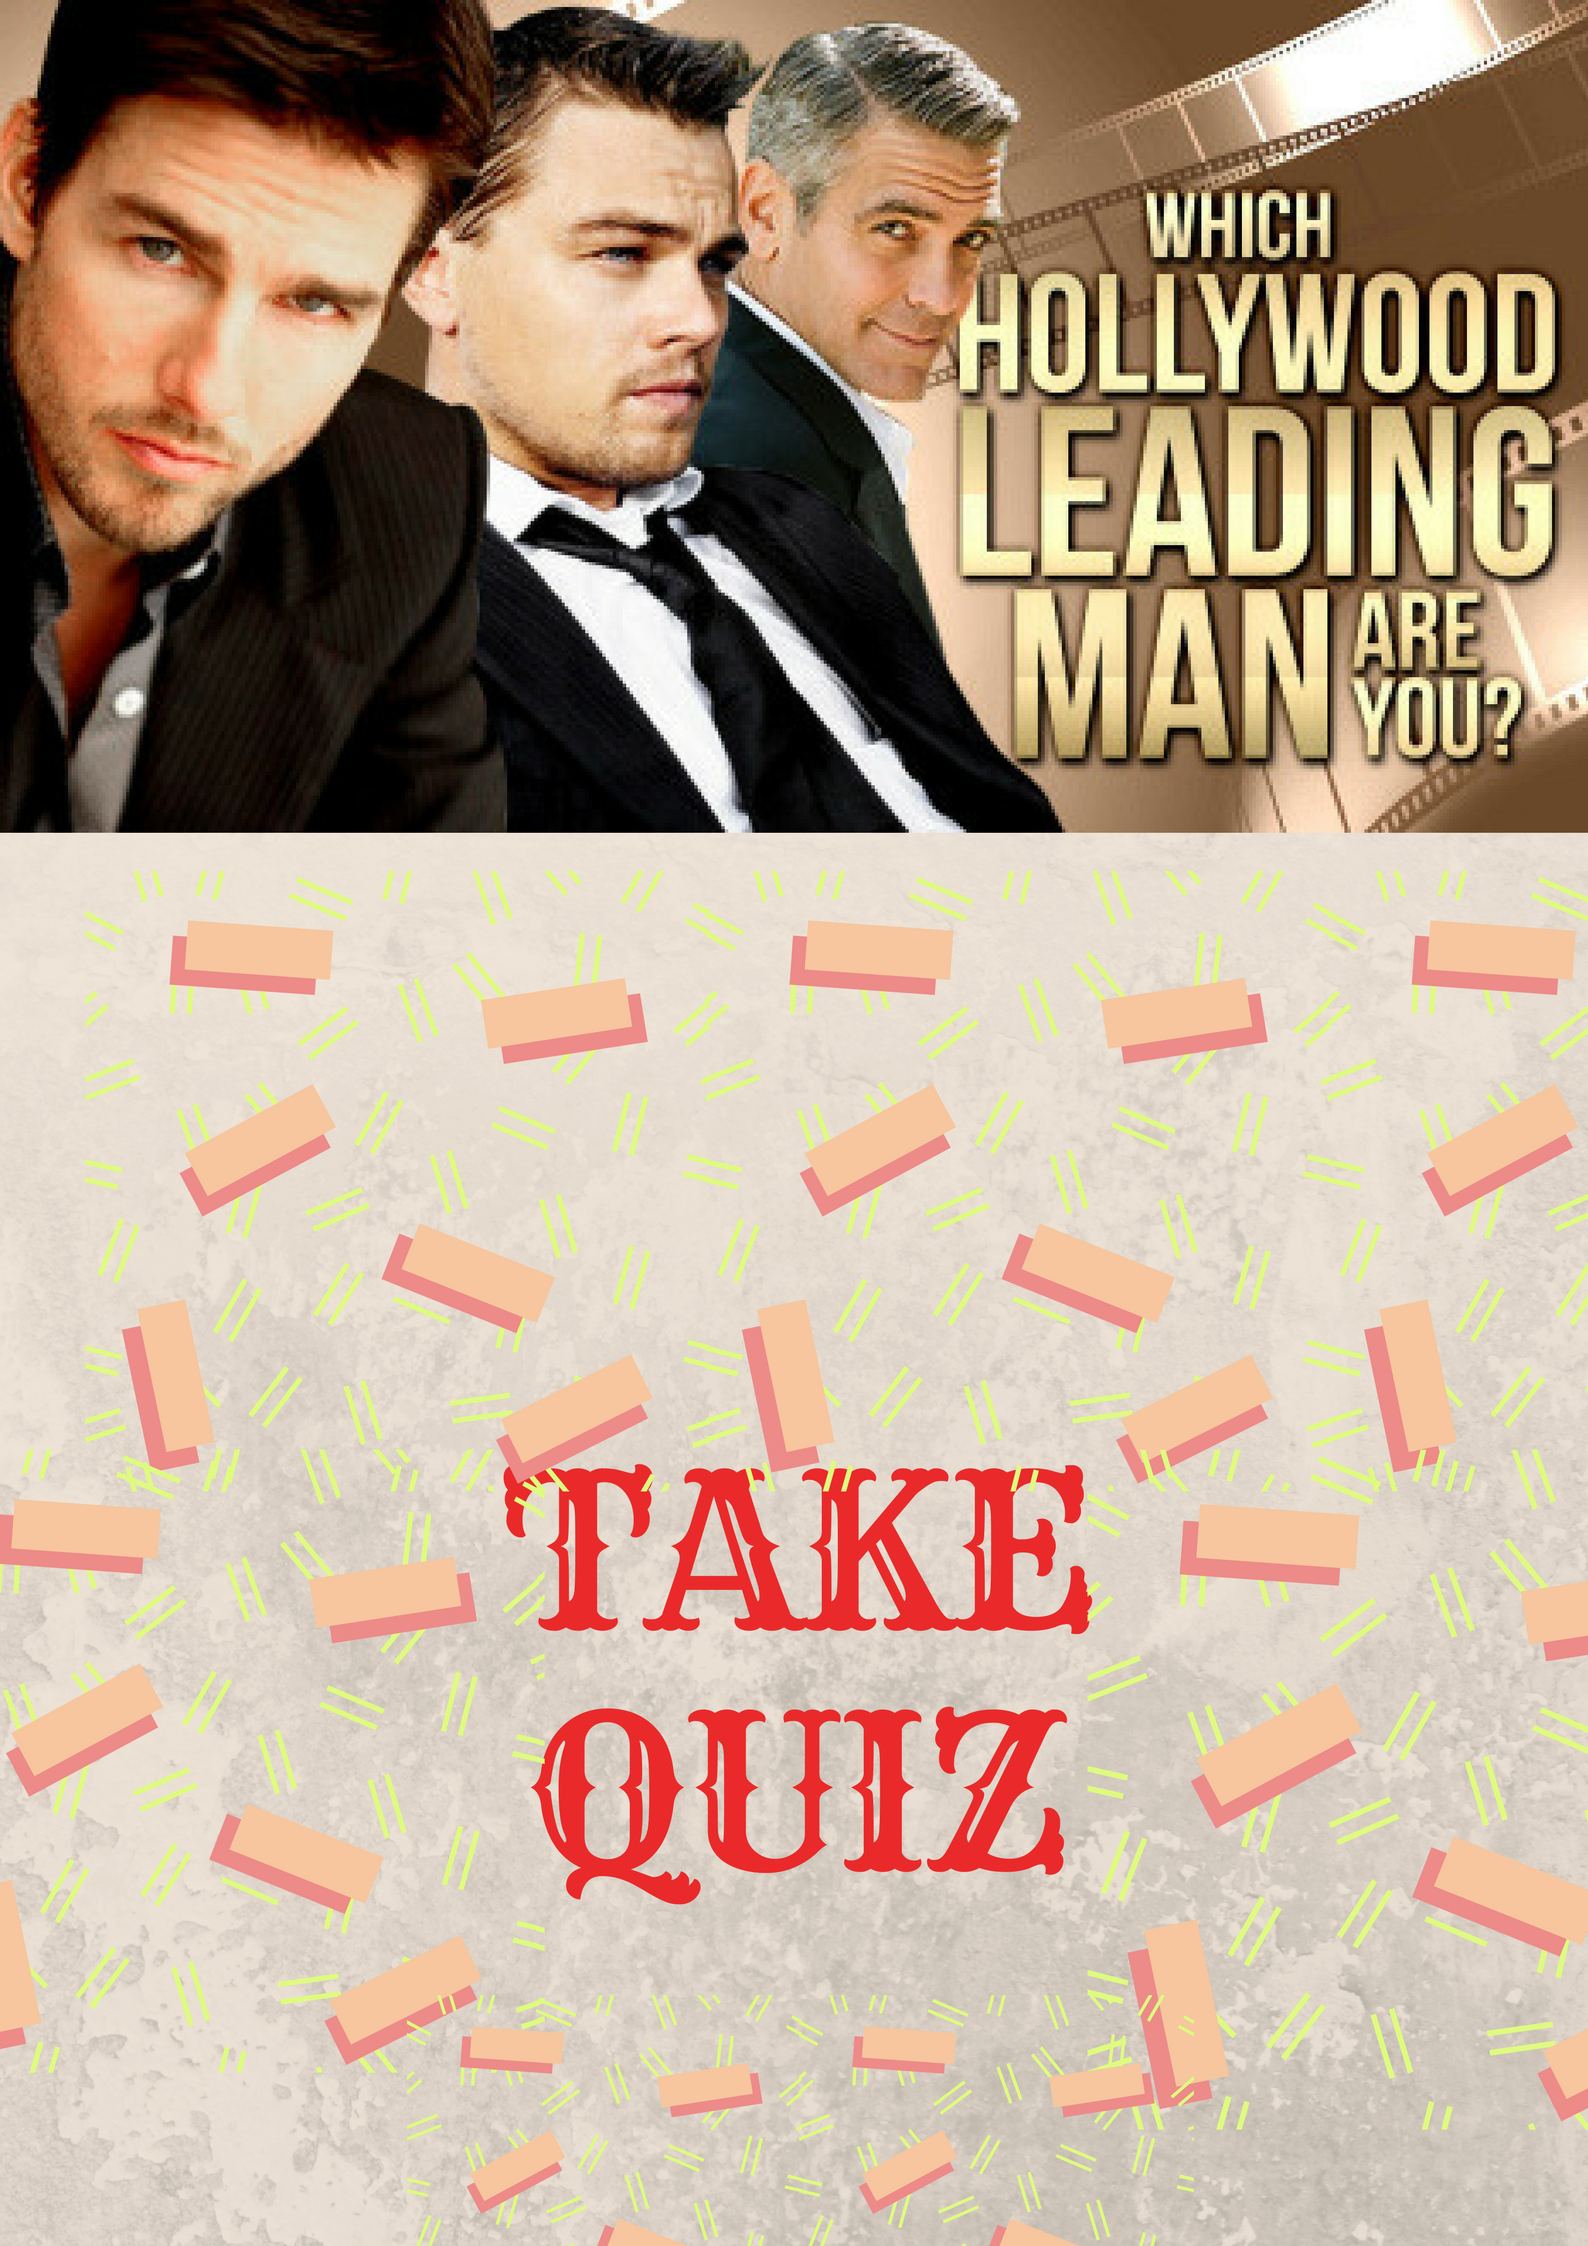 Which Hollywood Leading Man Are You? #Hollywood #quizzes